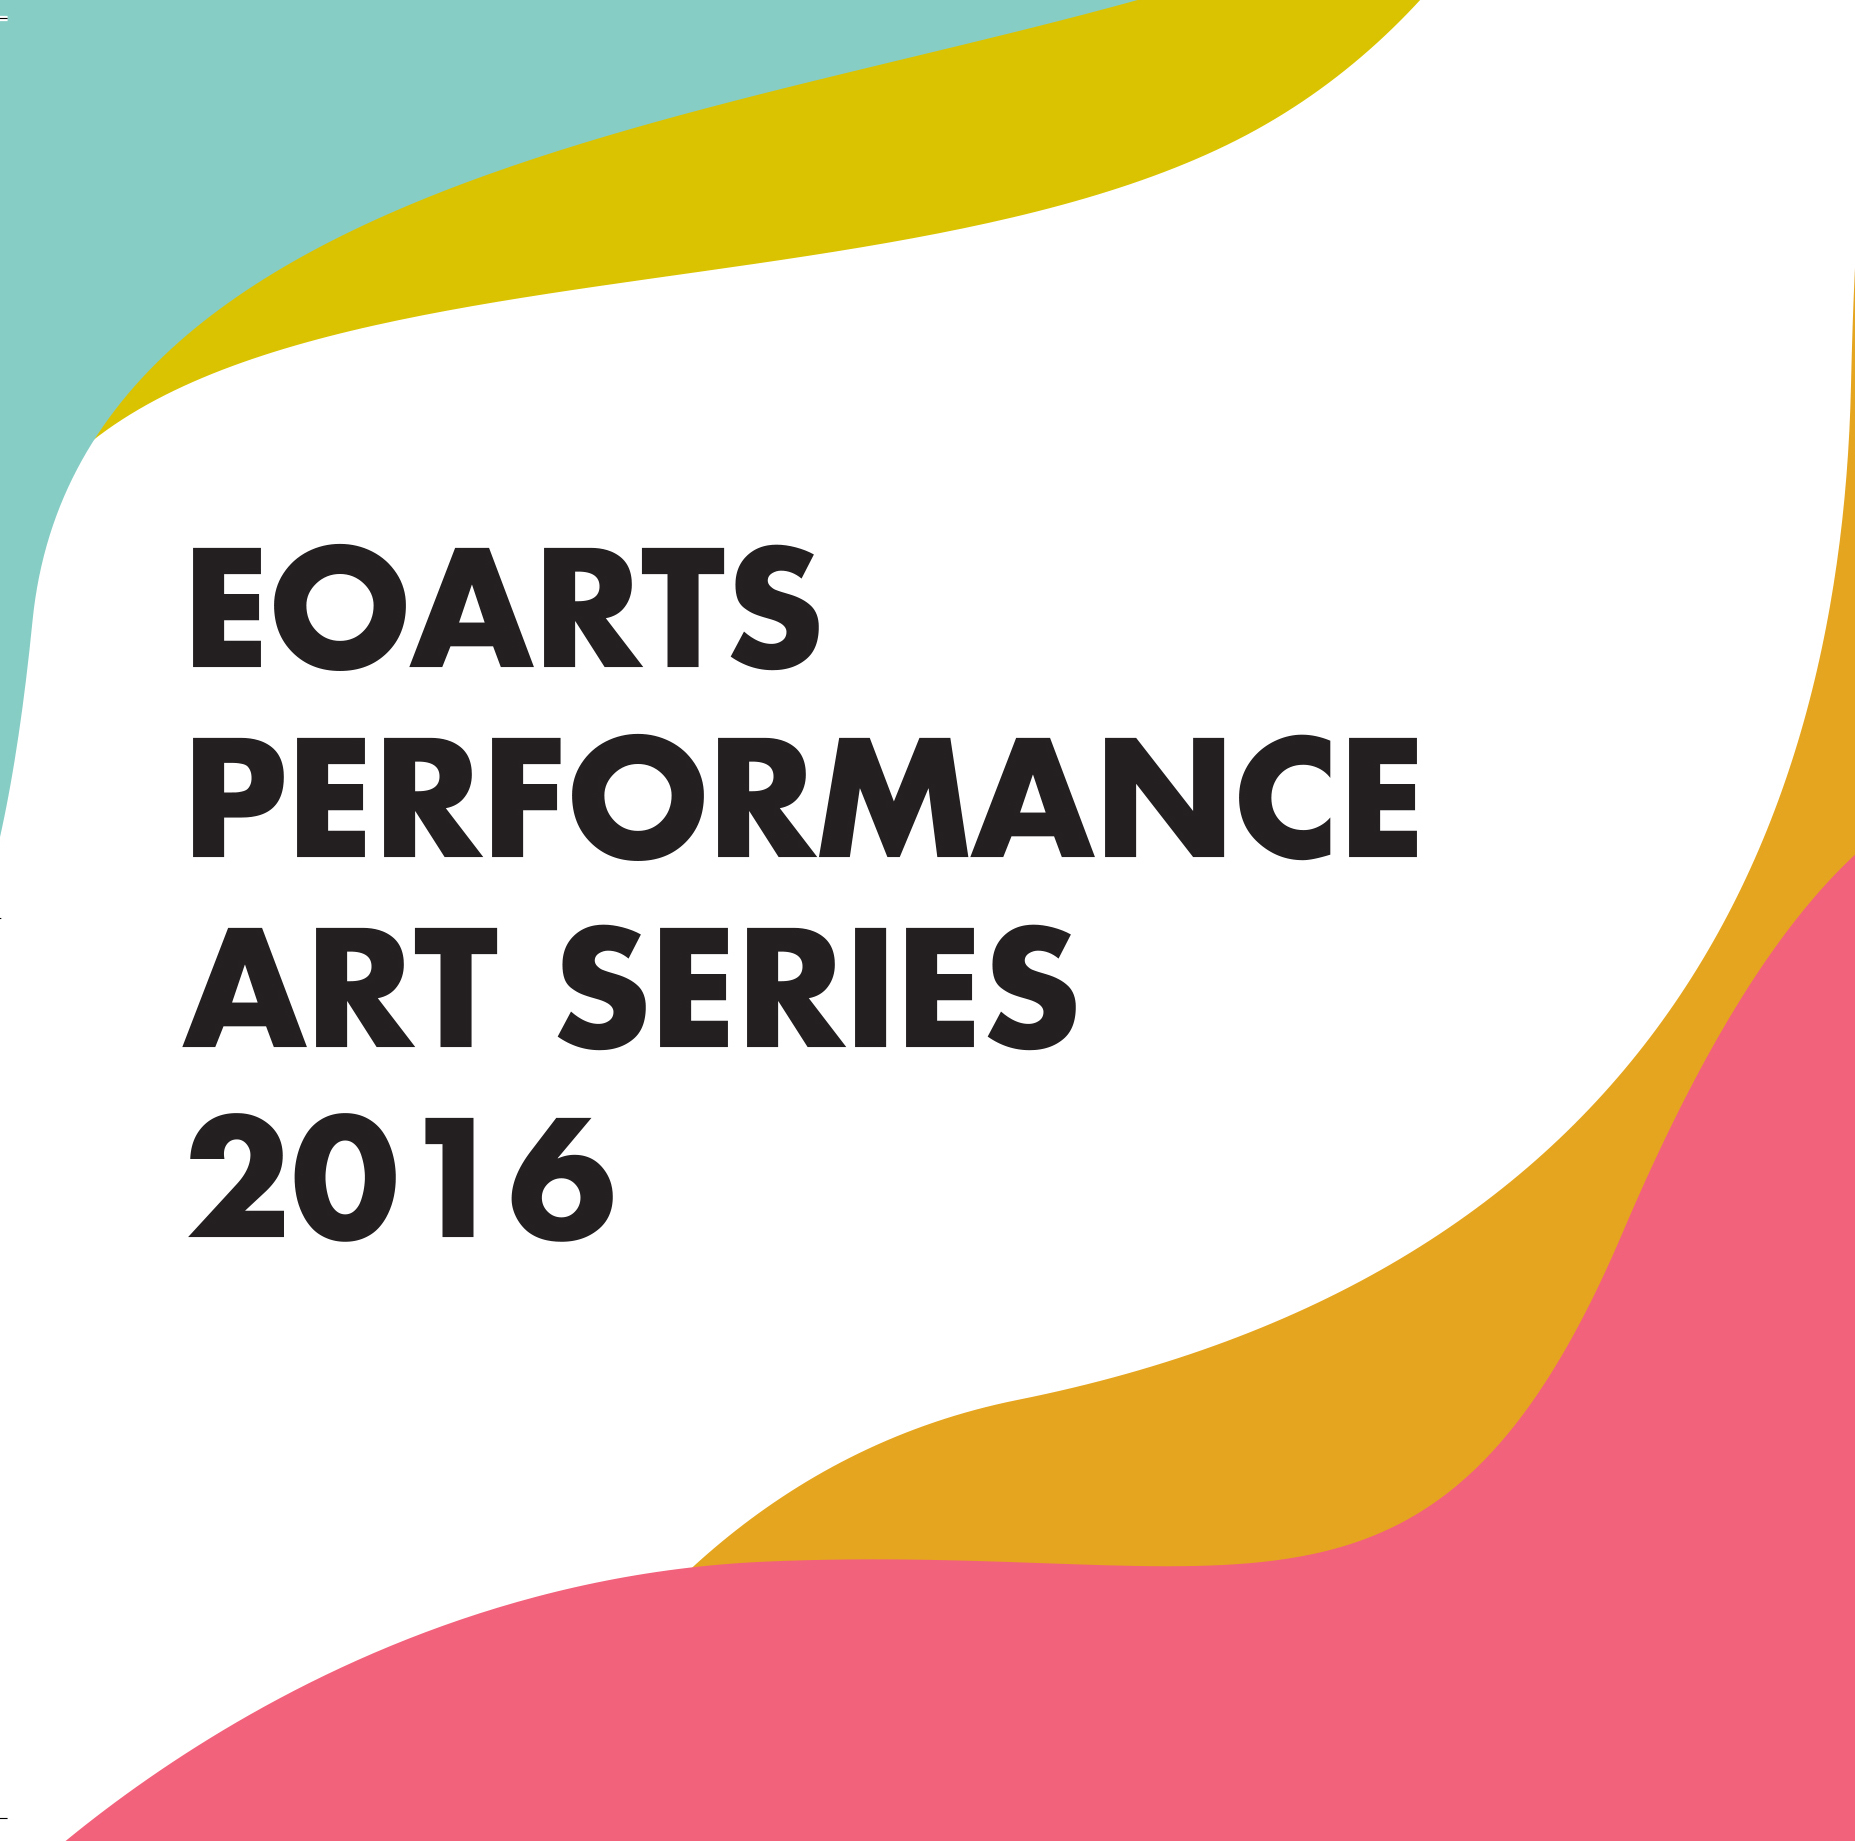 EOarts Performance Art Series Dates